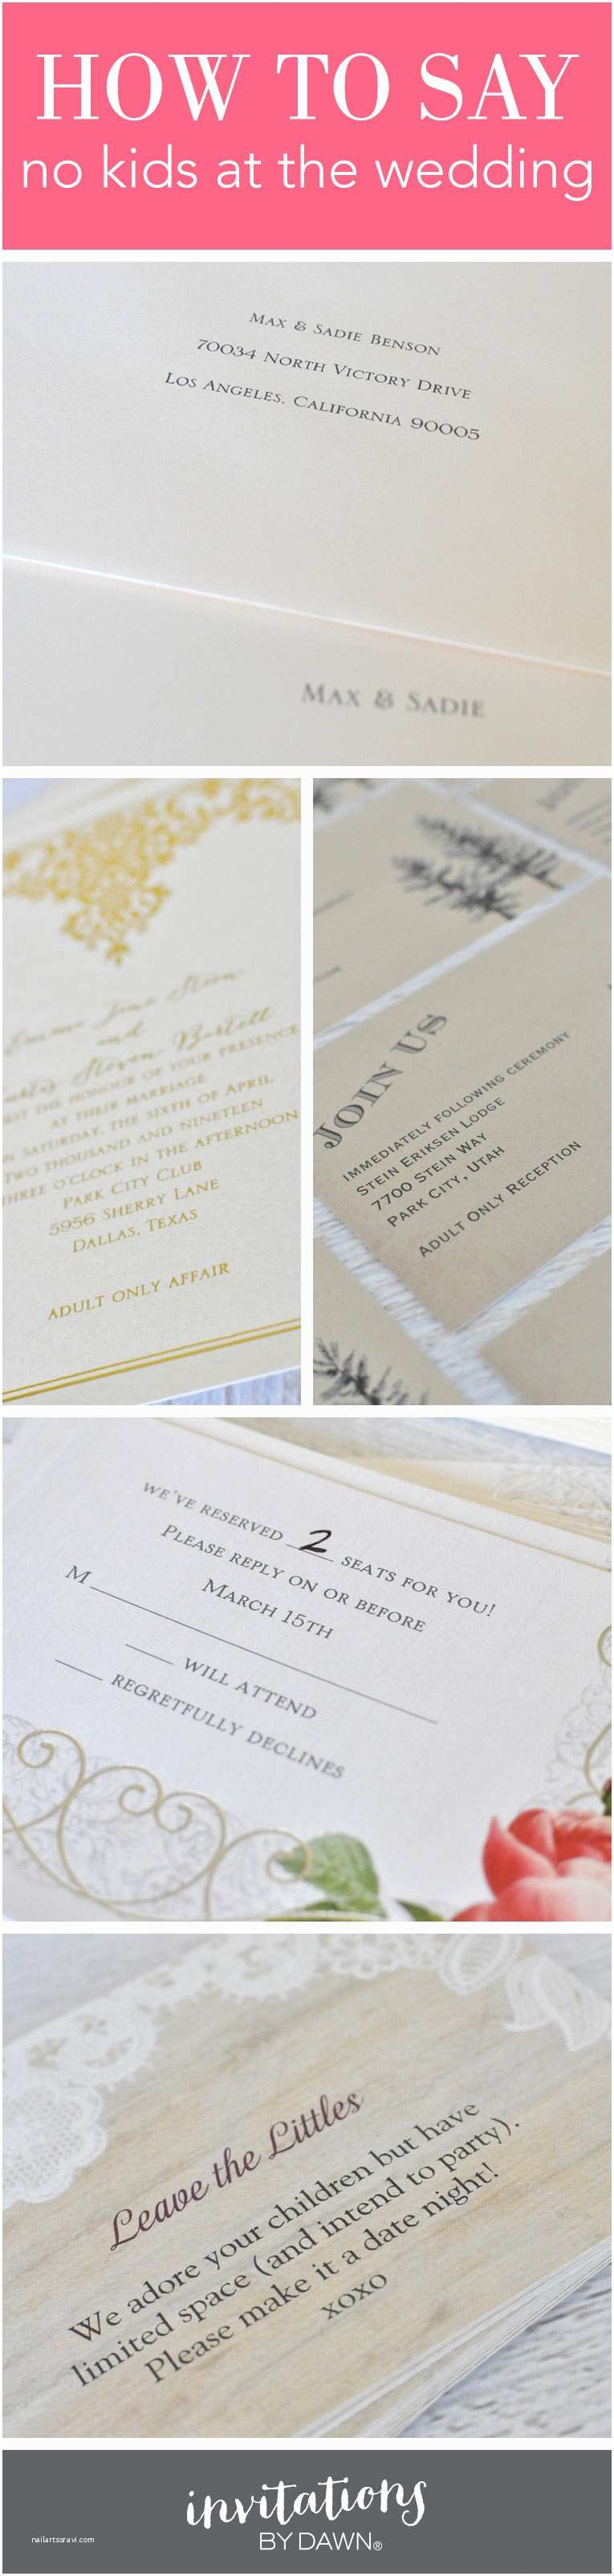 What Should A Wedding Invitation Say to Say No Kids at the Weddi and Sunflower Wedding